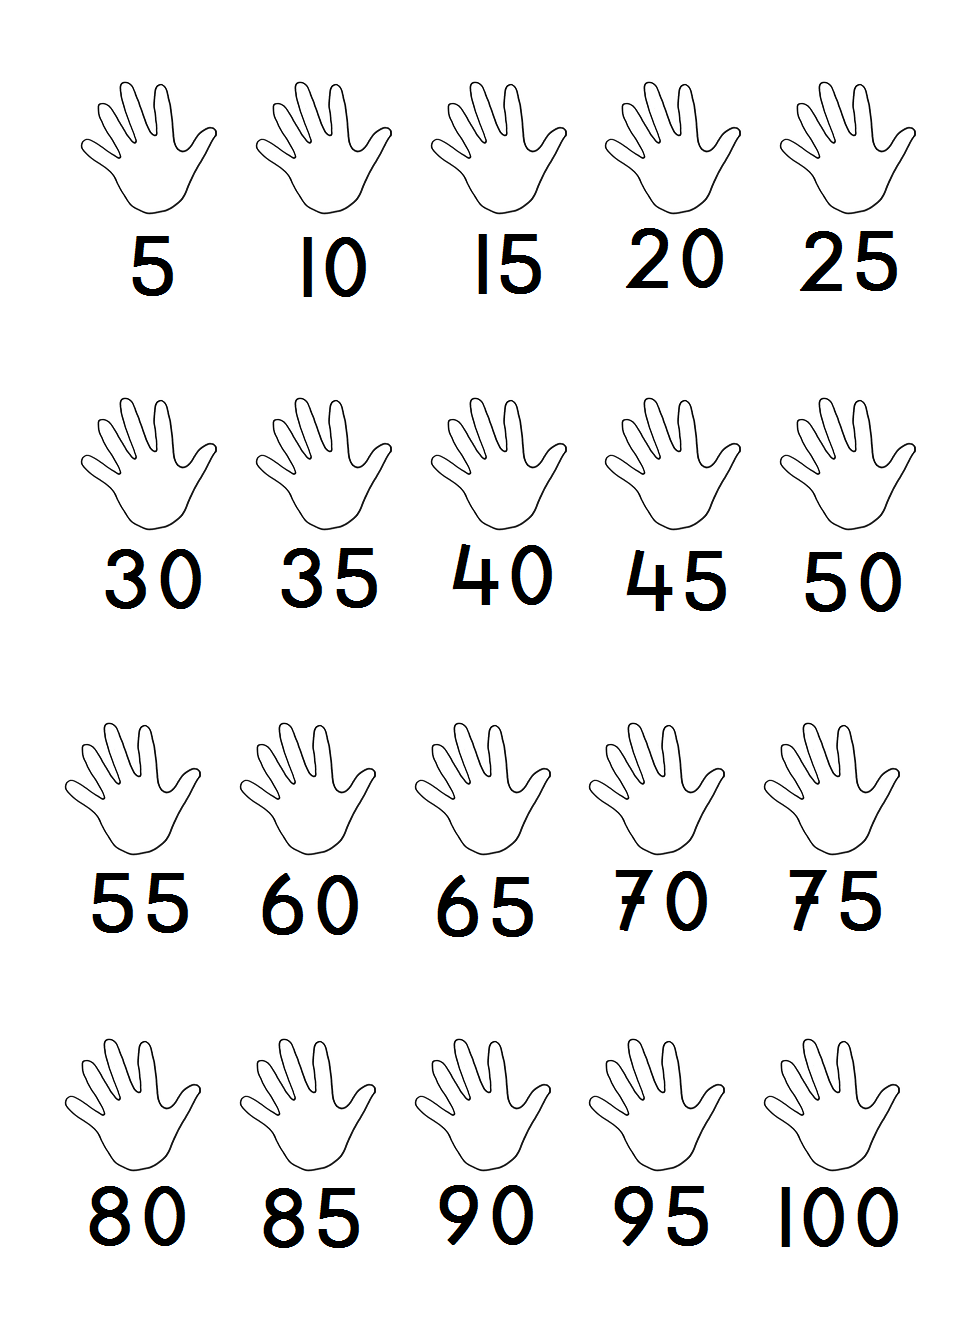 Skip Counting by 5's | Math | Pinterest | Skip counting, 5 s and Math